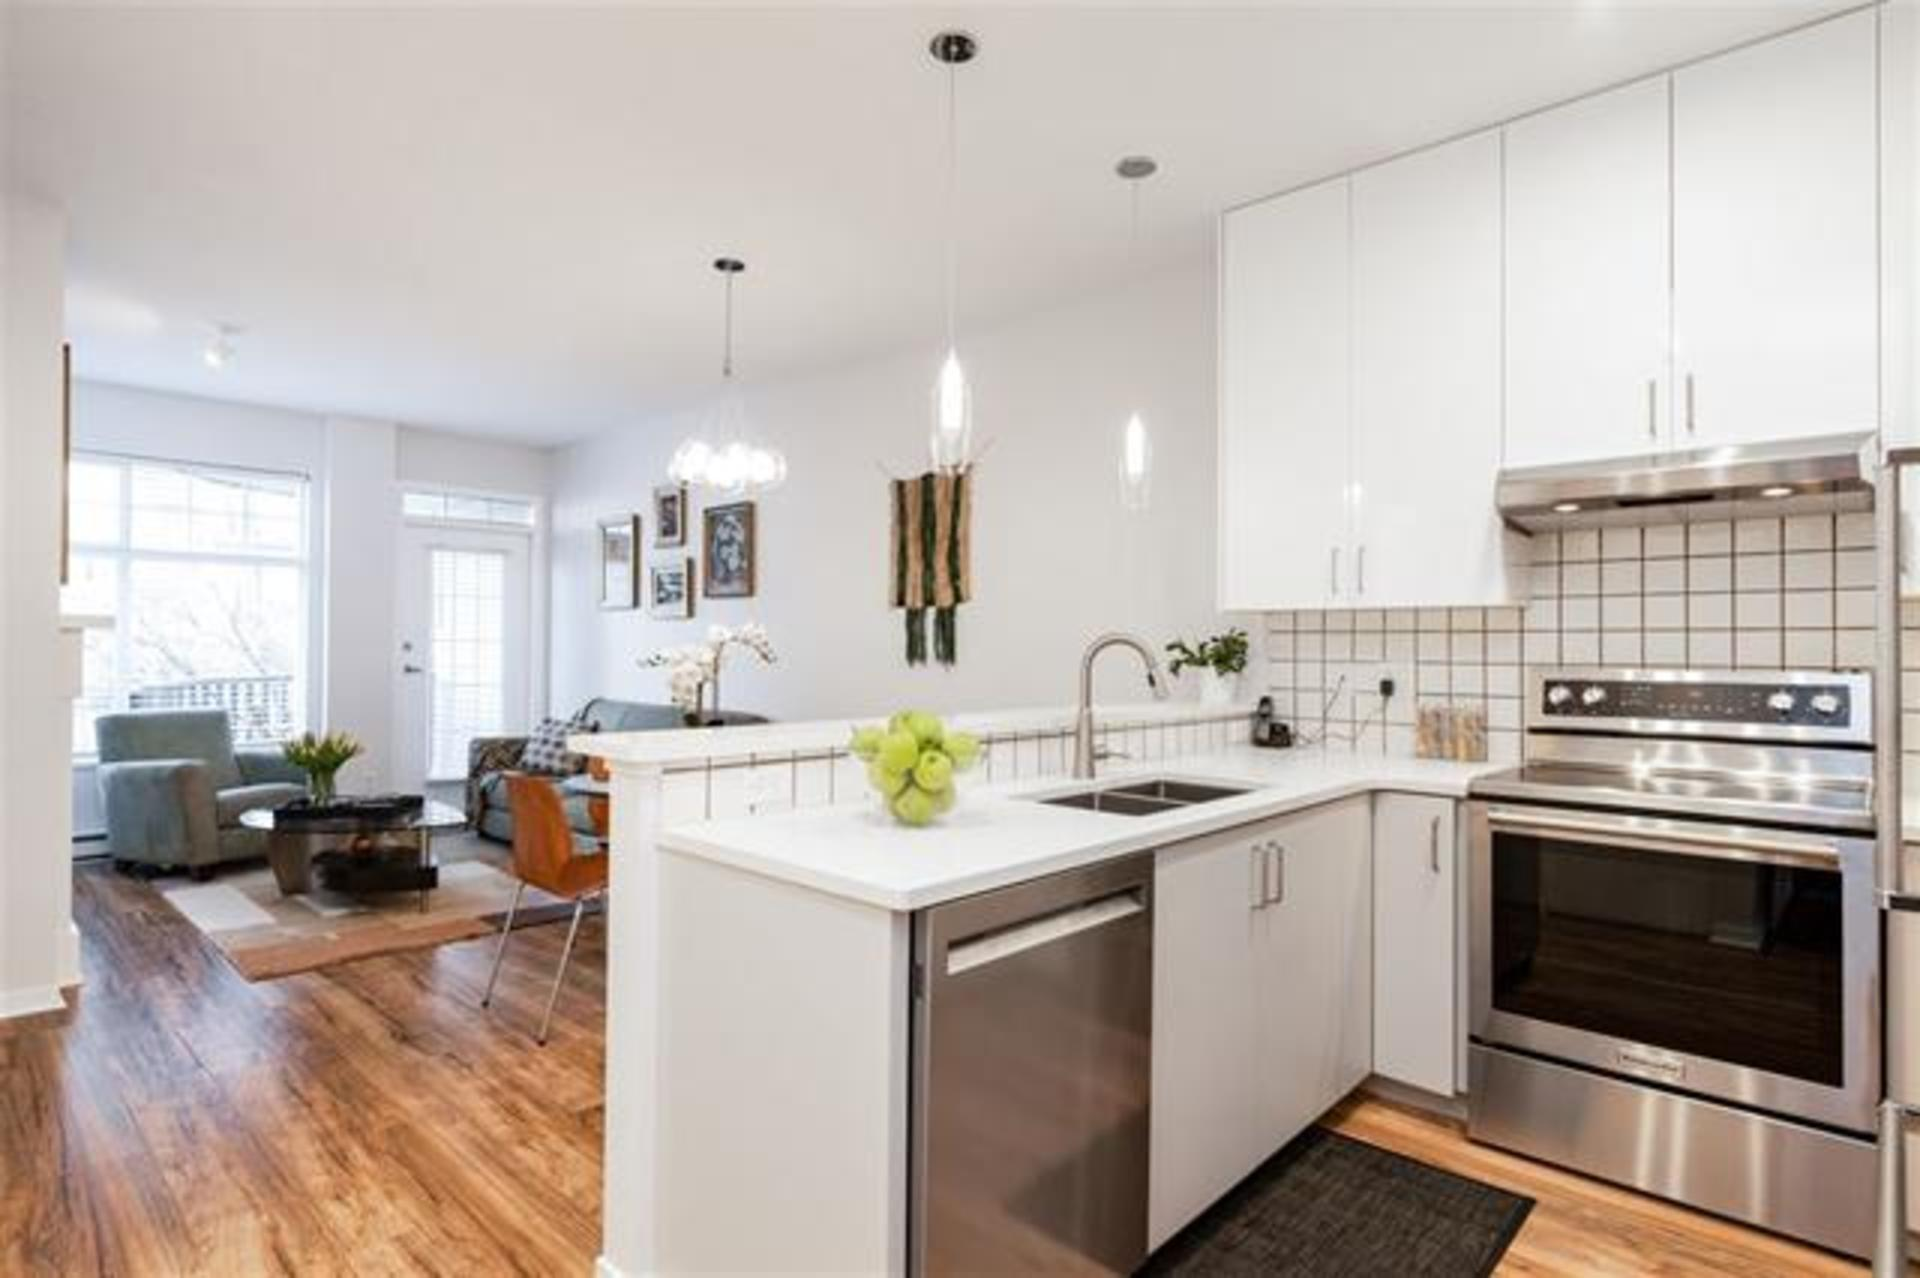 262466475-8 at 301 - 1388 Nelson Street, West End VW, Vancouver West